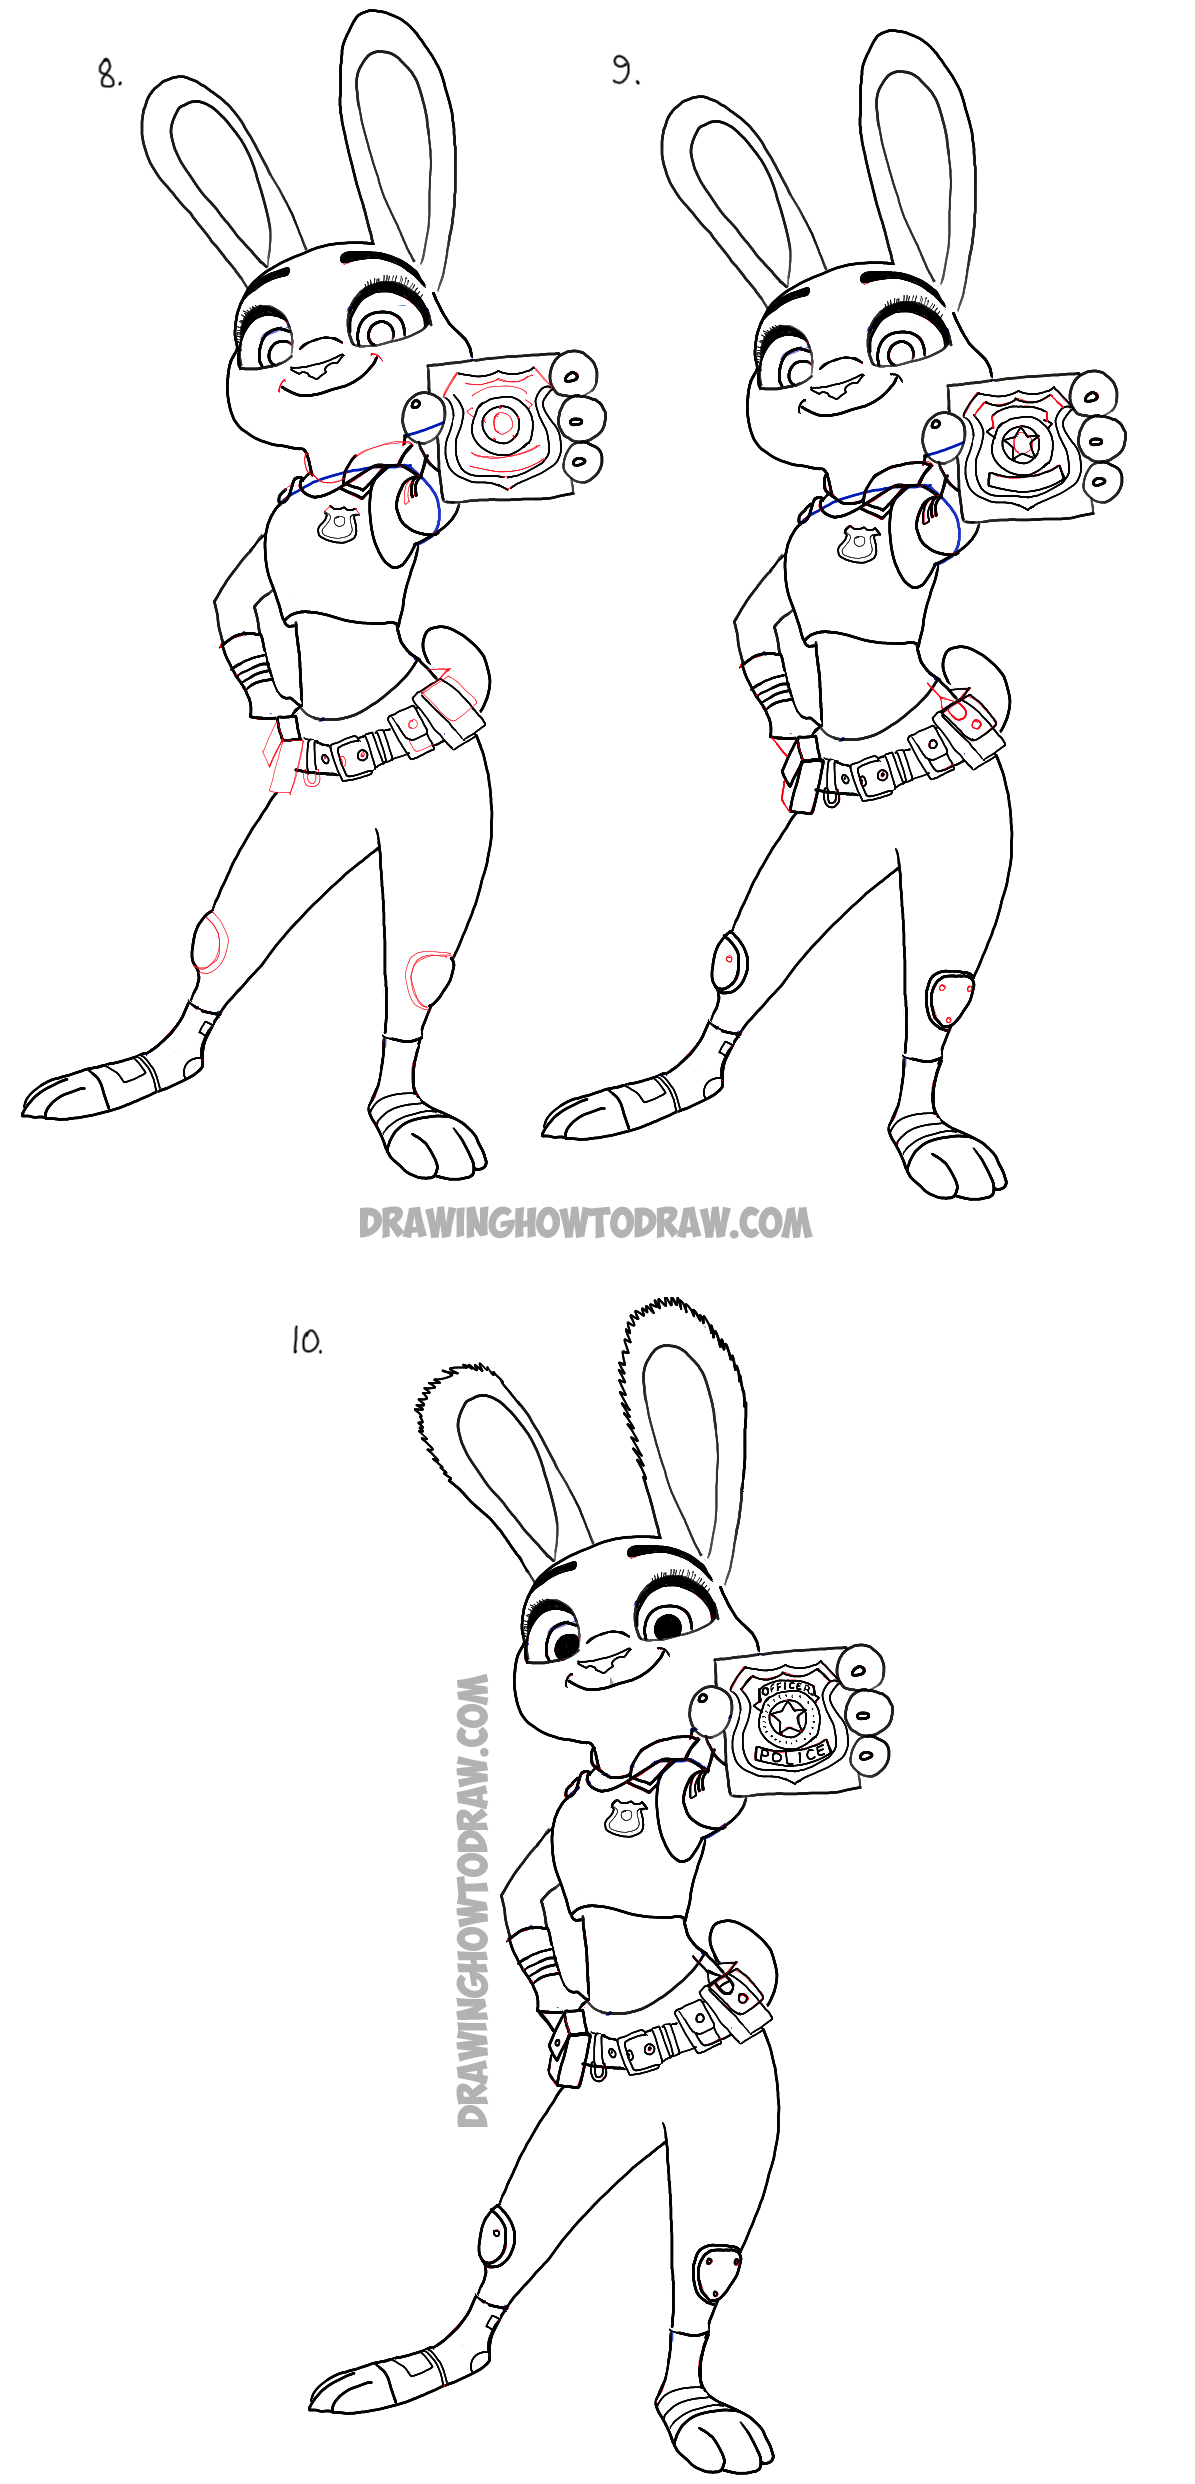 How to Draw Judy Hopps from Zootopia : Easy Step by Step